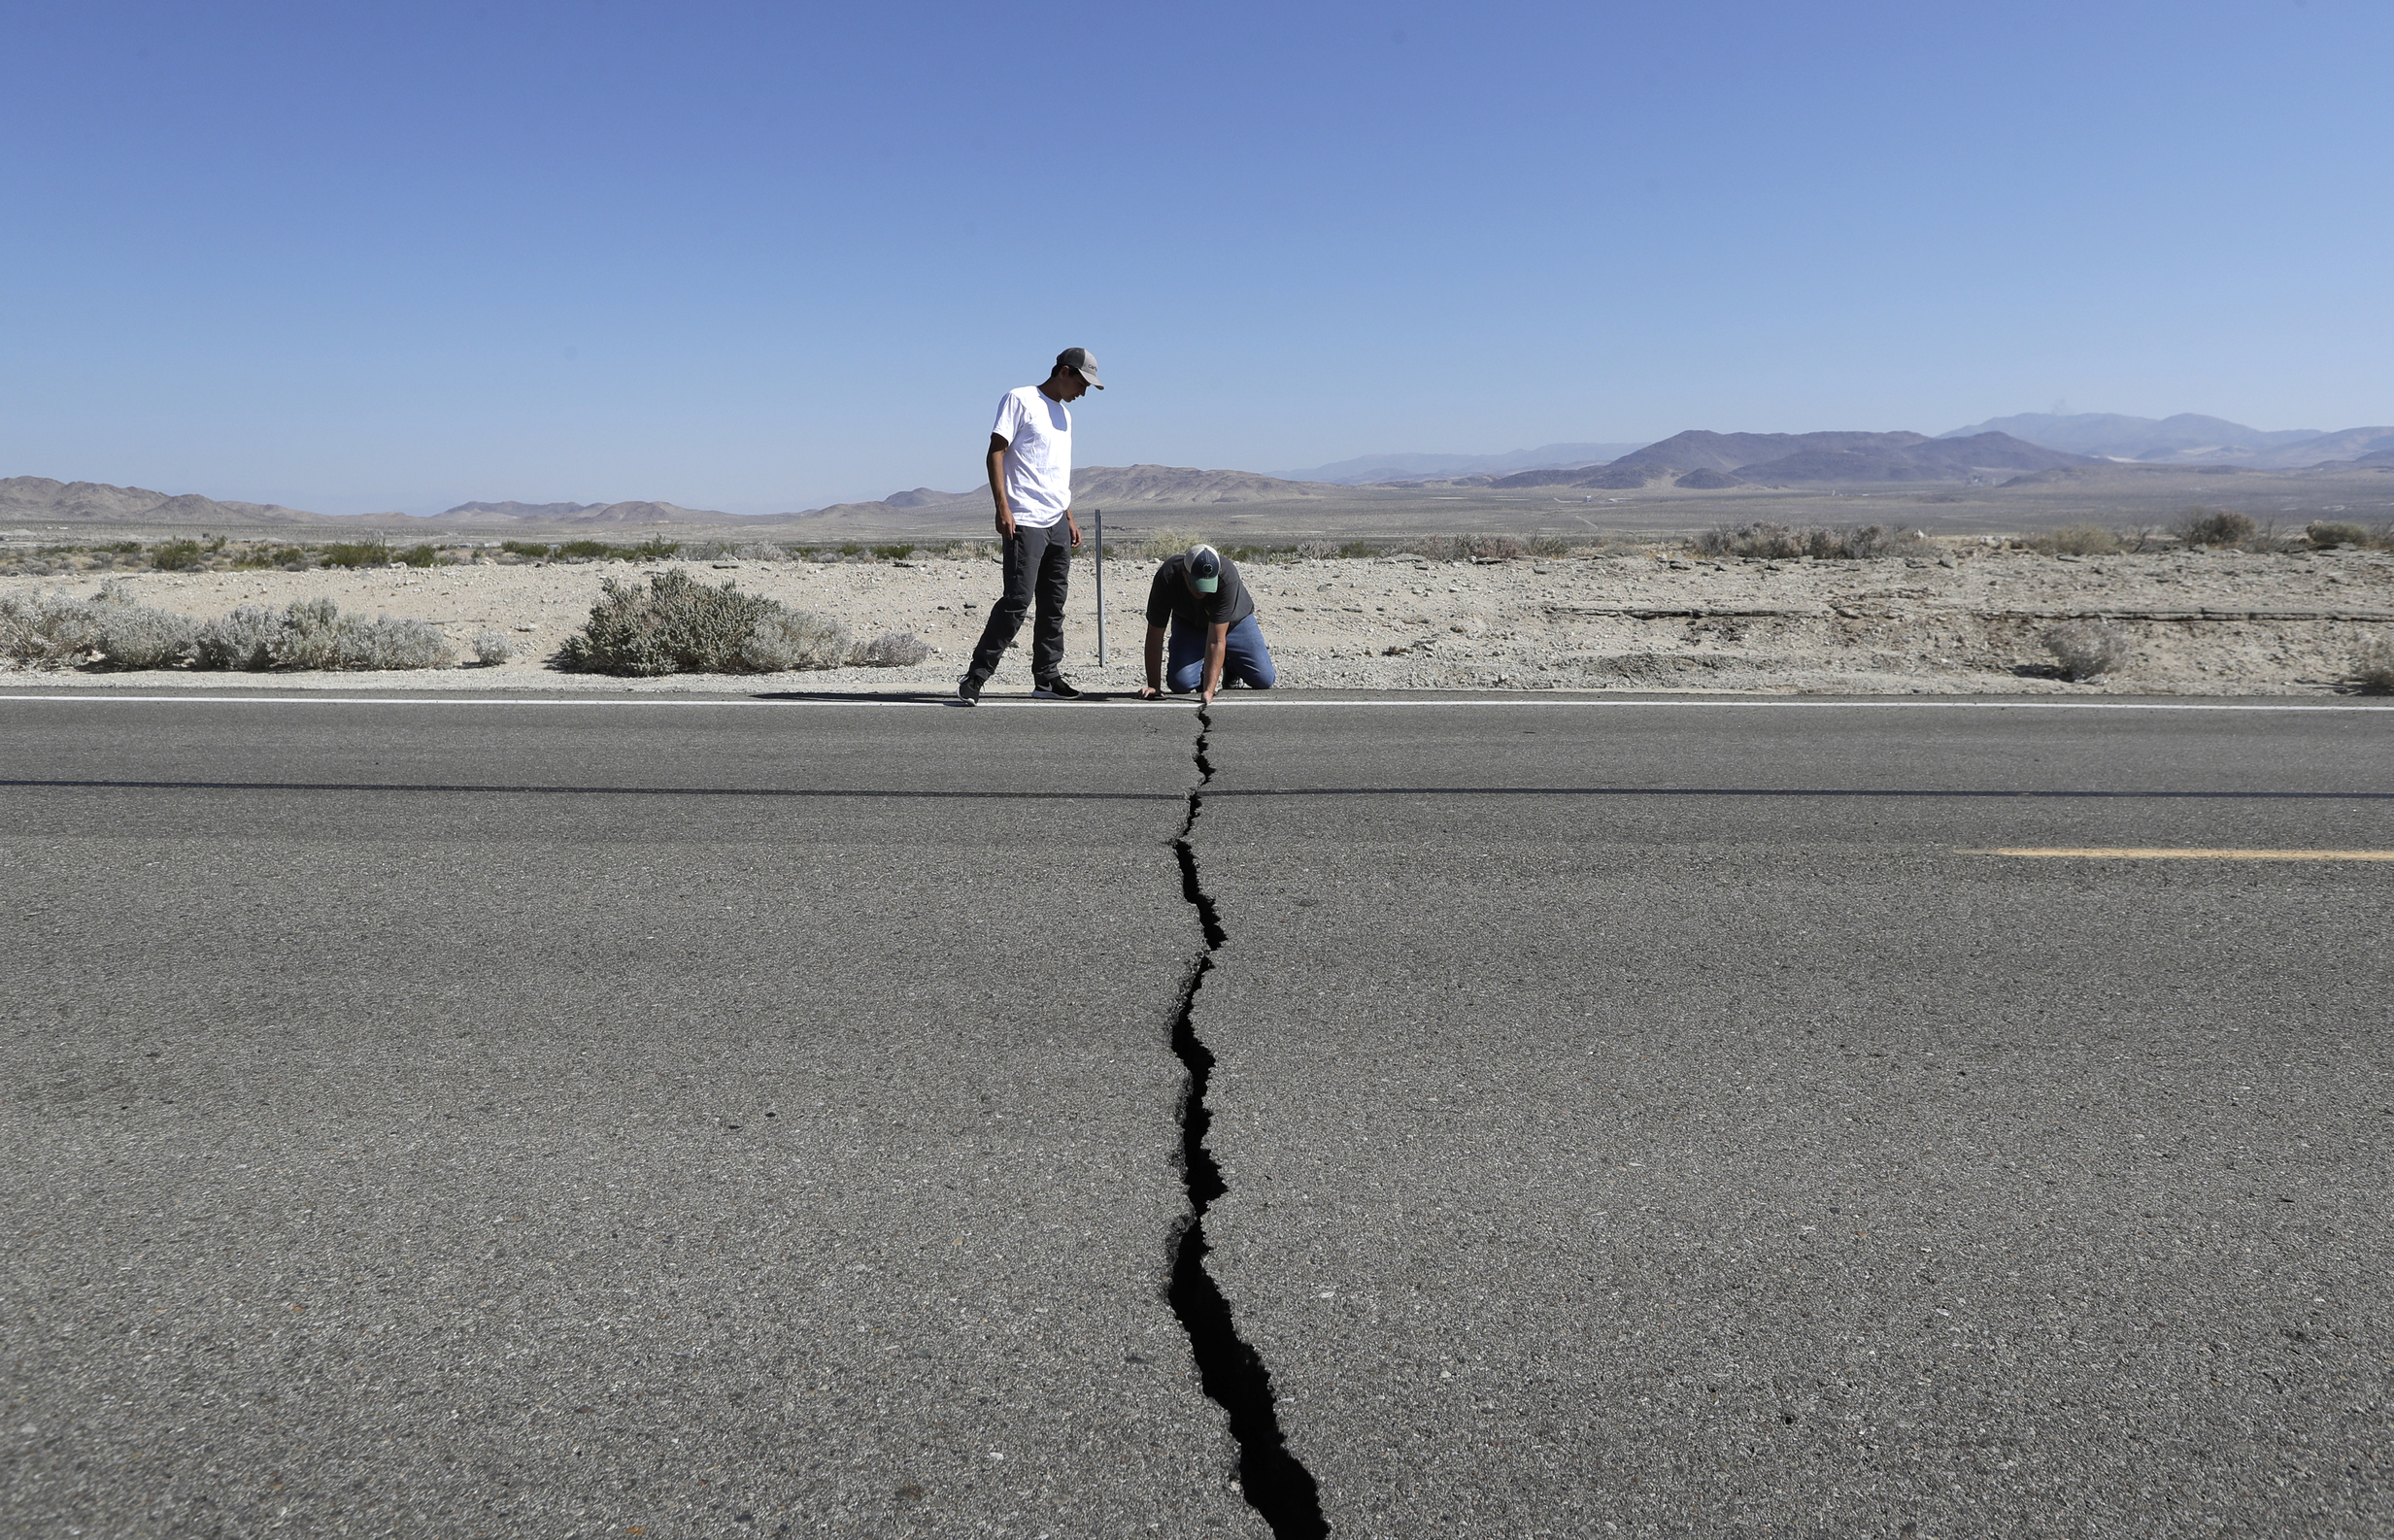 A photo of two men outside, looking at a large, wide crack in the pavement of a road.